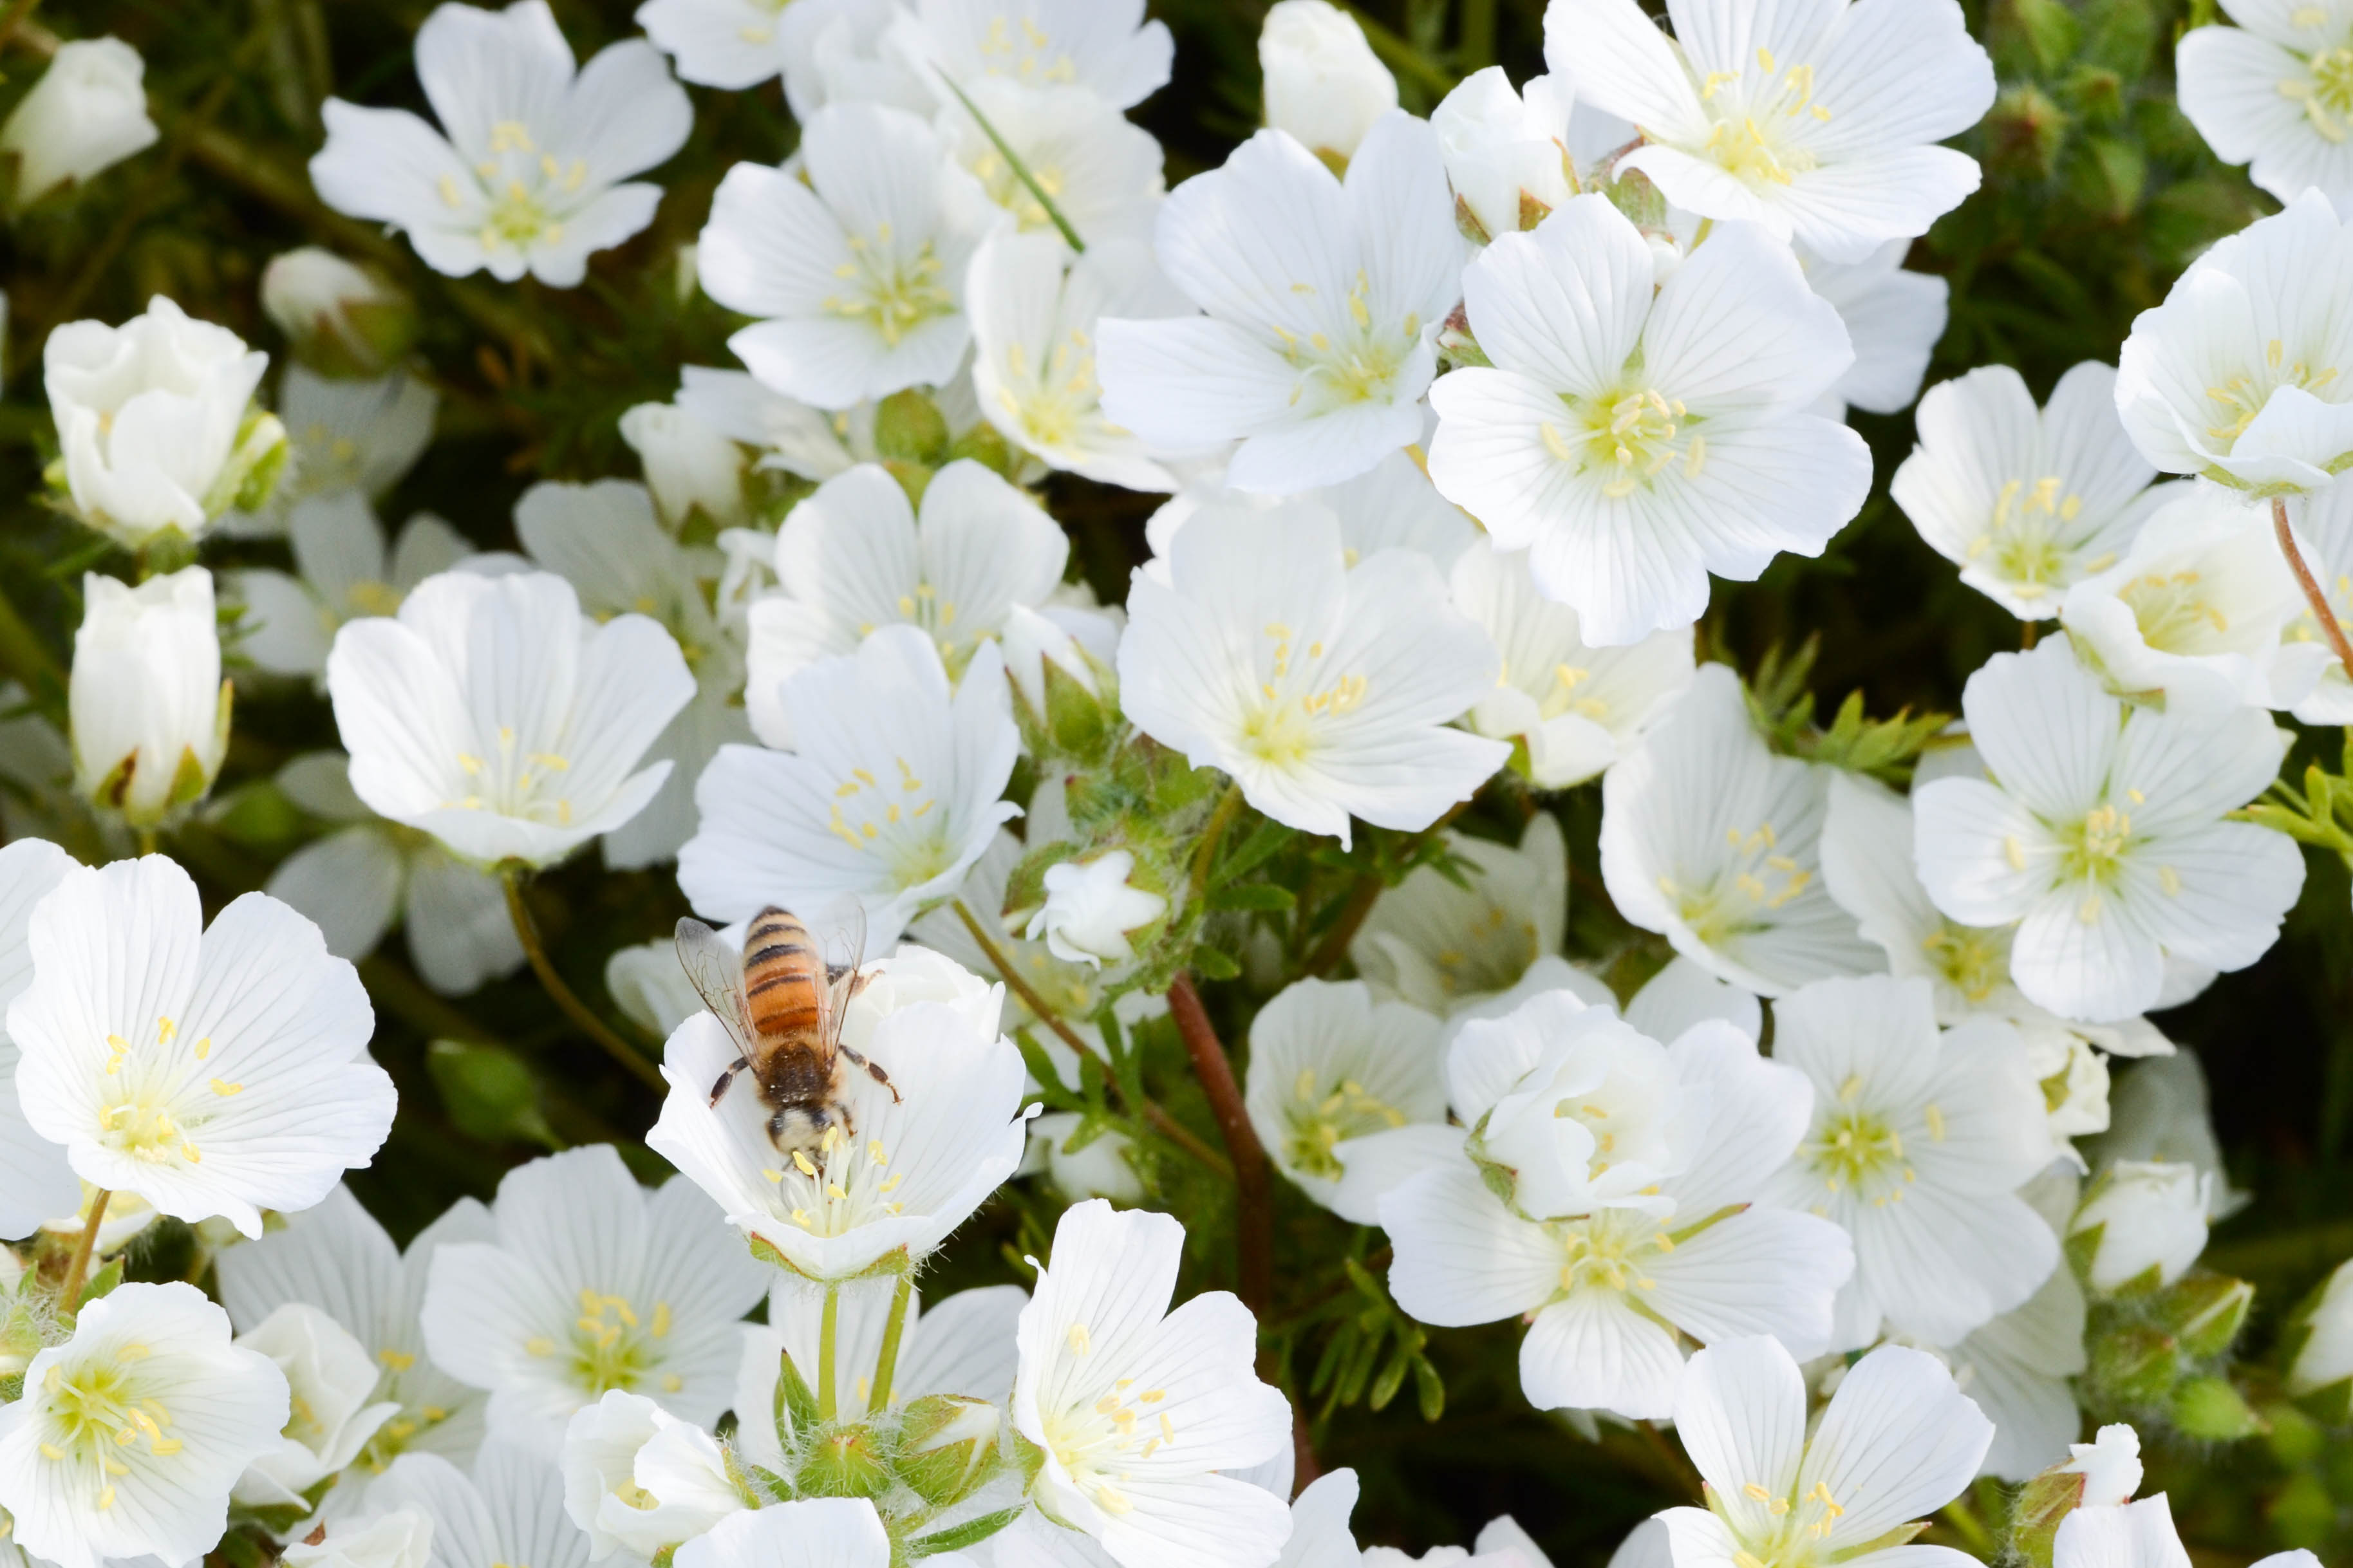 Honeybees on Meadowfoam